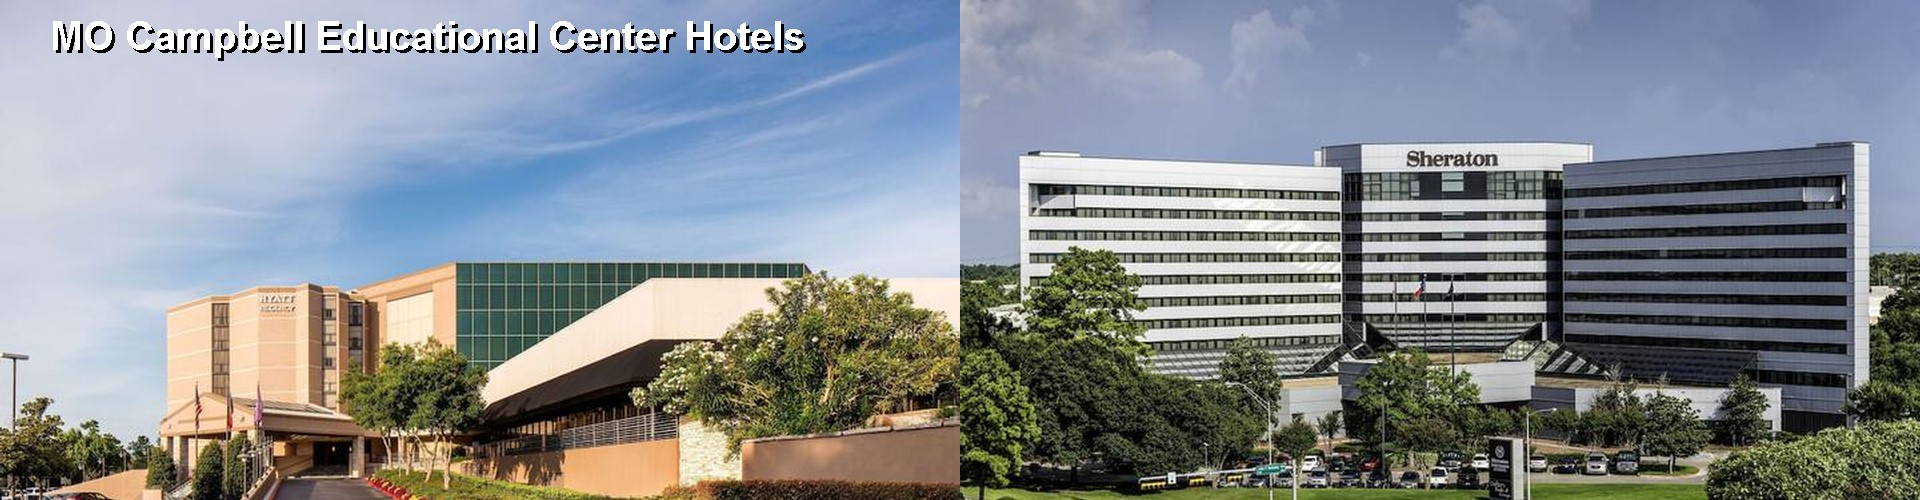 5 Best Hotels Near Mo Campbell Educational Center